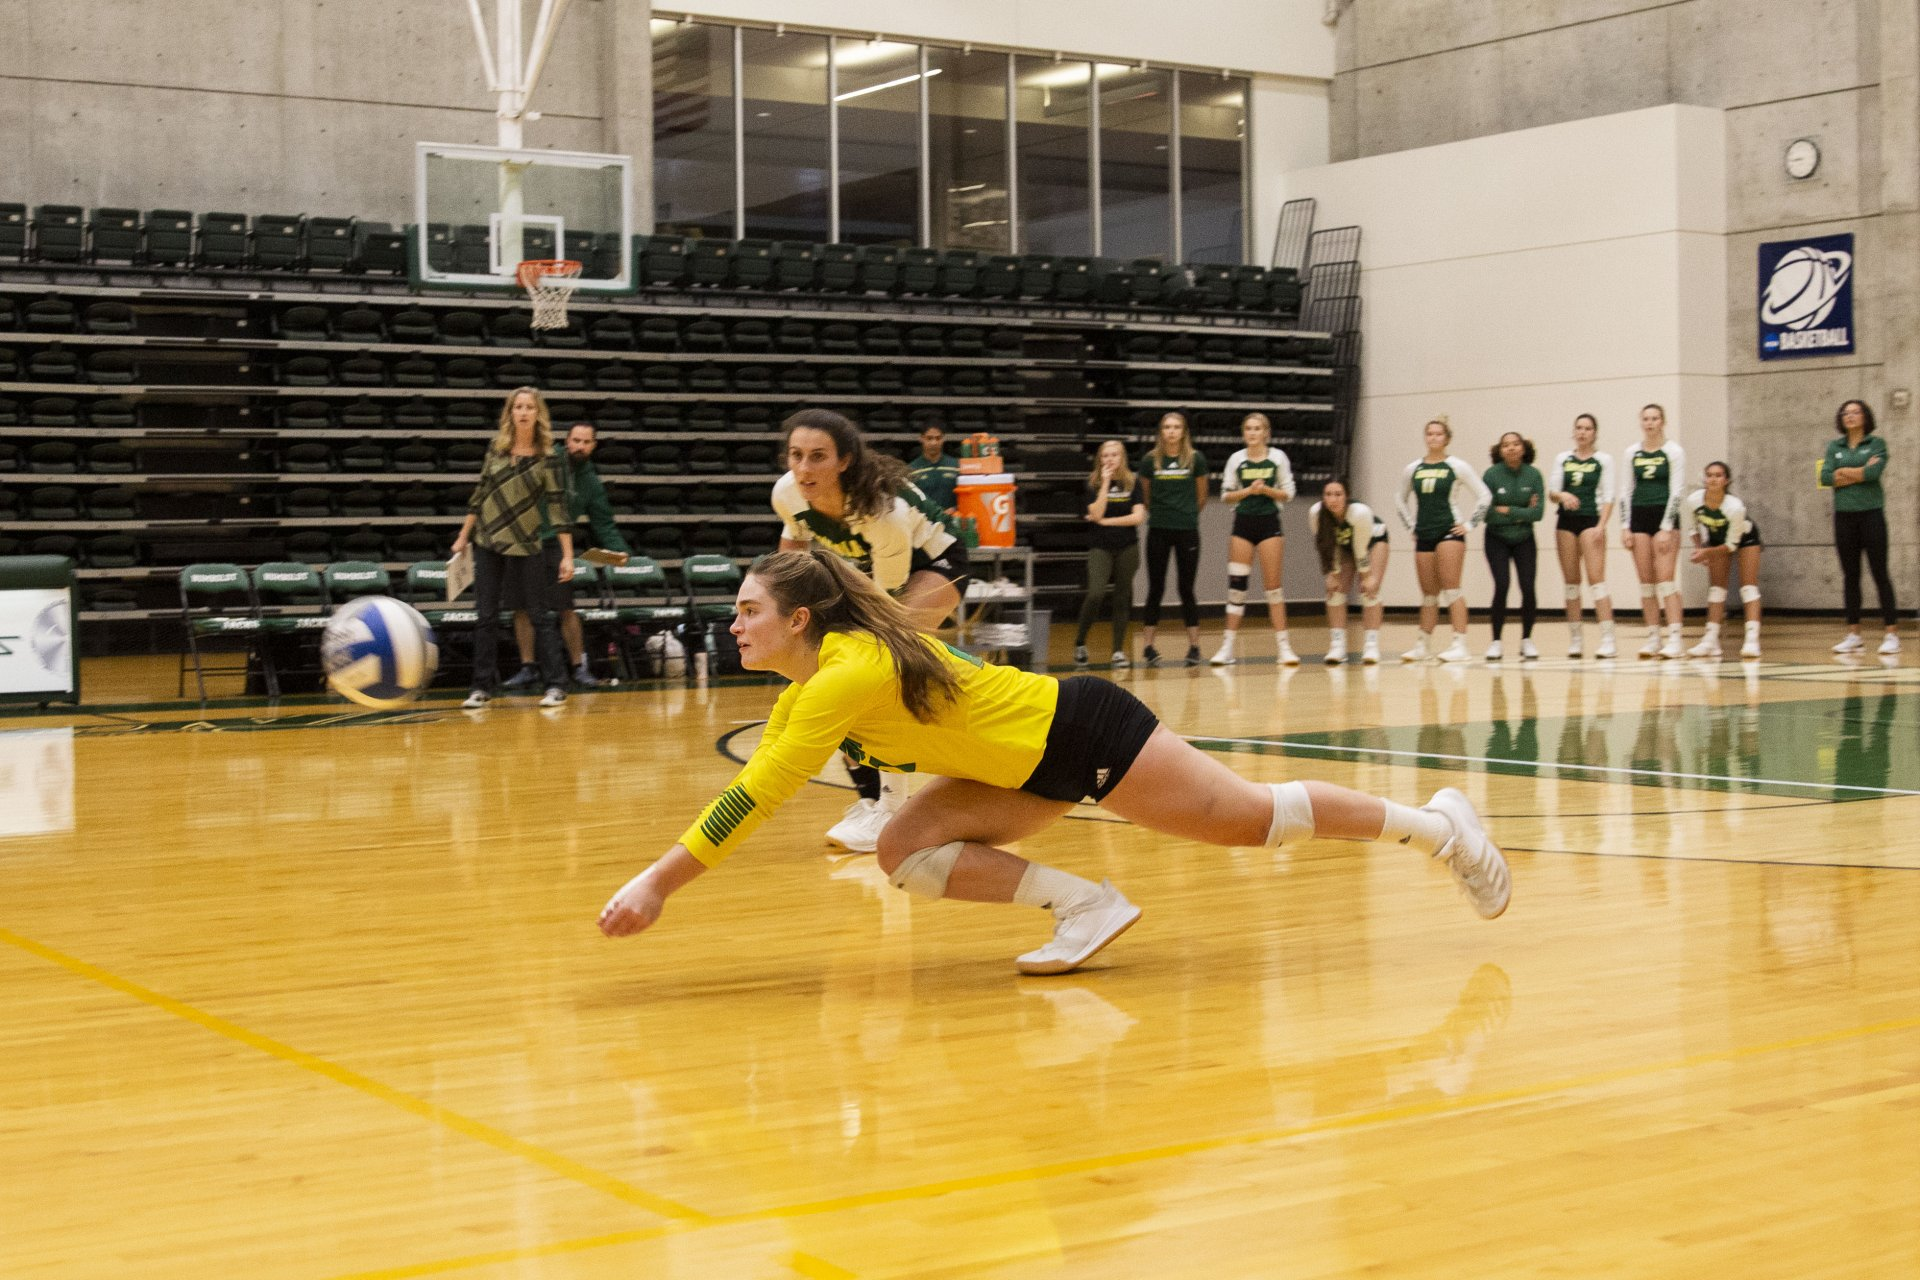 Humboldt State's Odelia Ryan makes a diving effort to keep the play alive during the Jacks' match against Chico State at Lumberjack Arena on November 1. | Photo by Thomas Lal